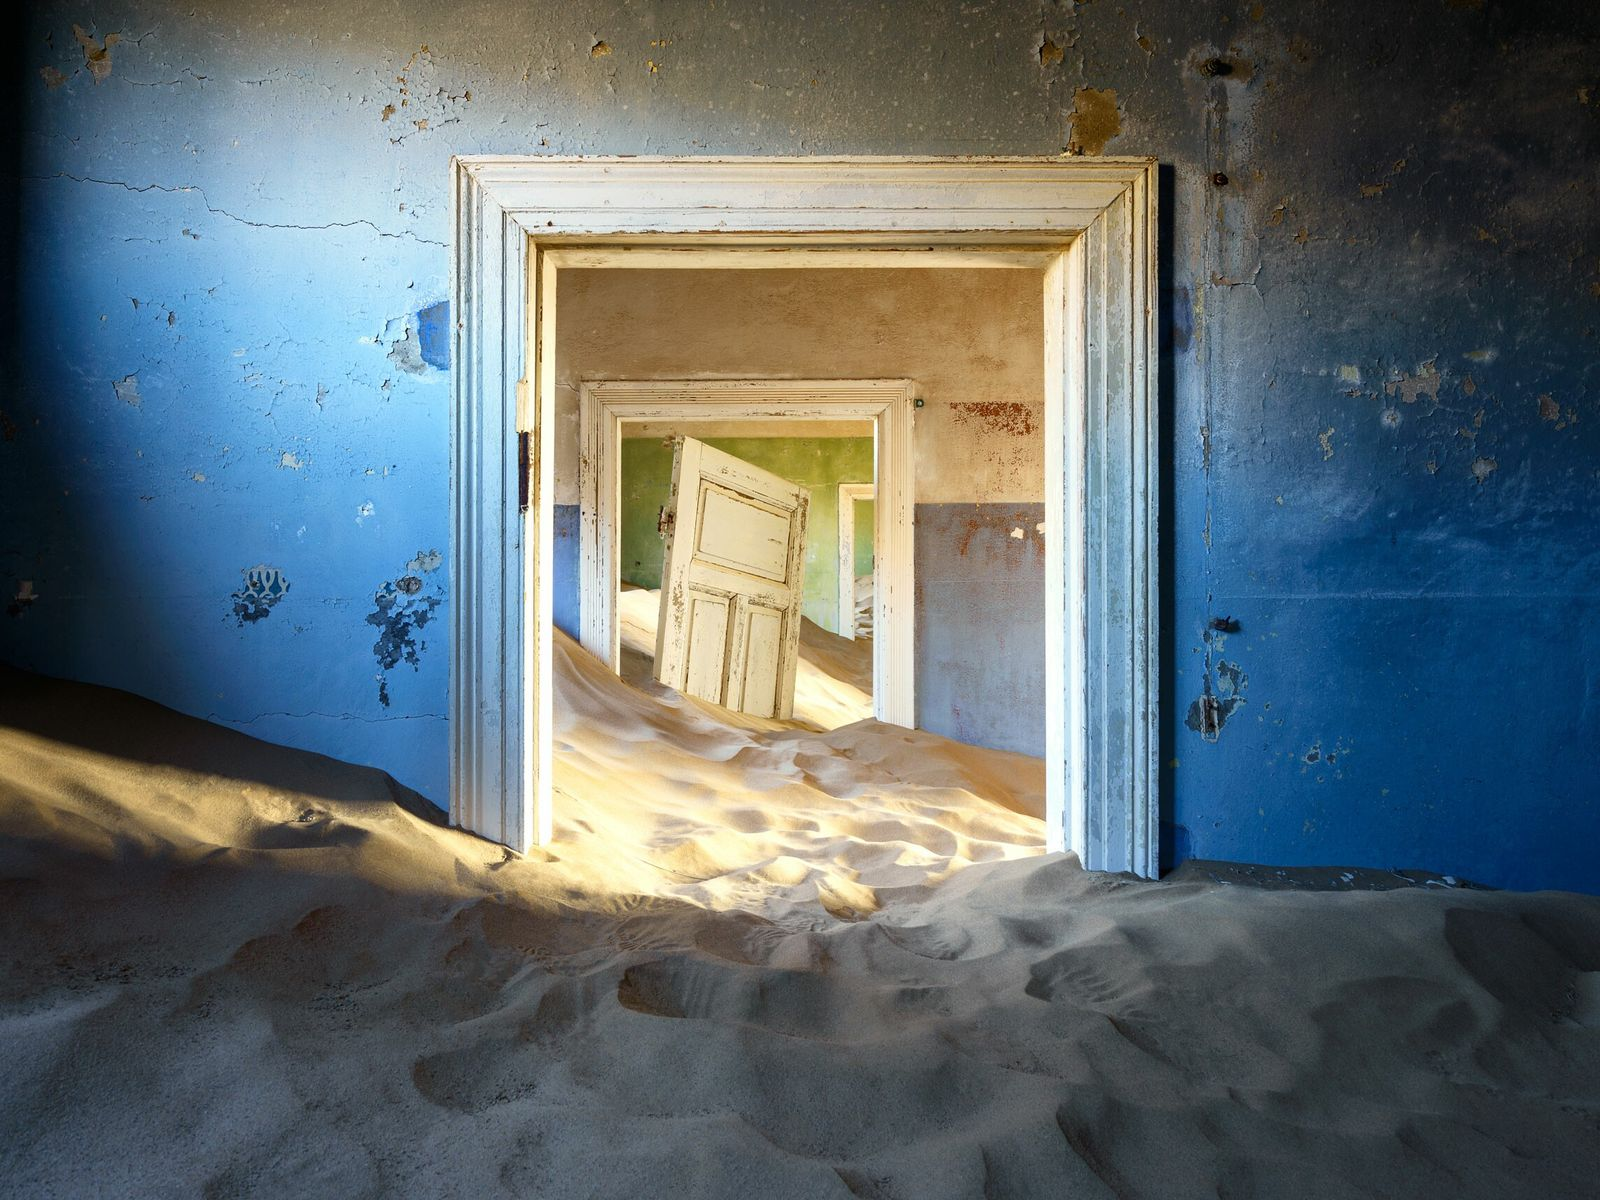 Kolmanskop, in the Namib Desert, is a diamond mining town that has been drowned in sand ...